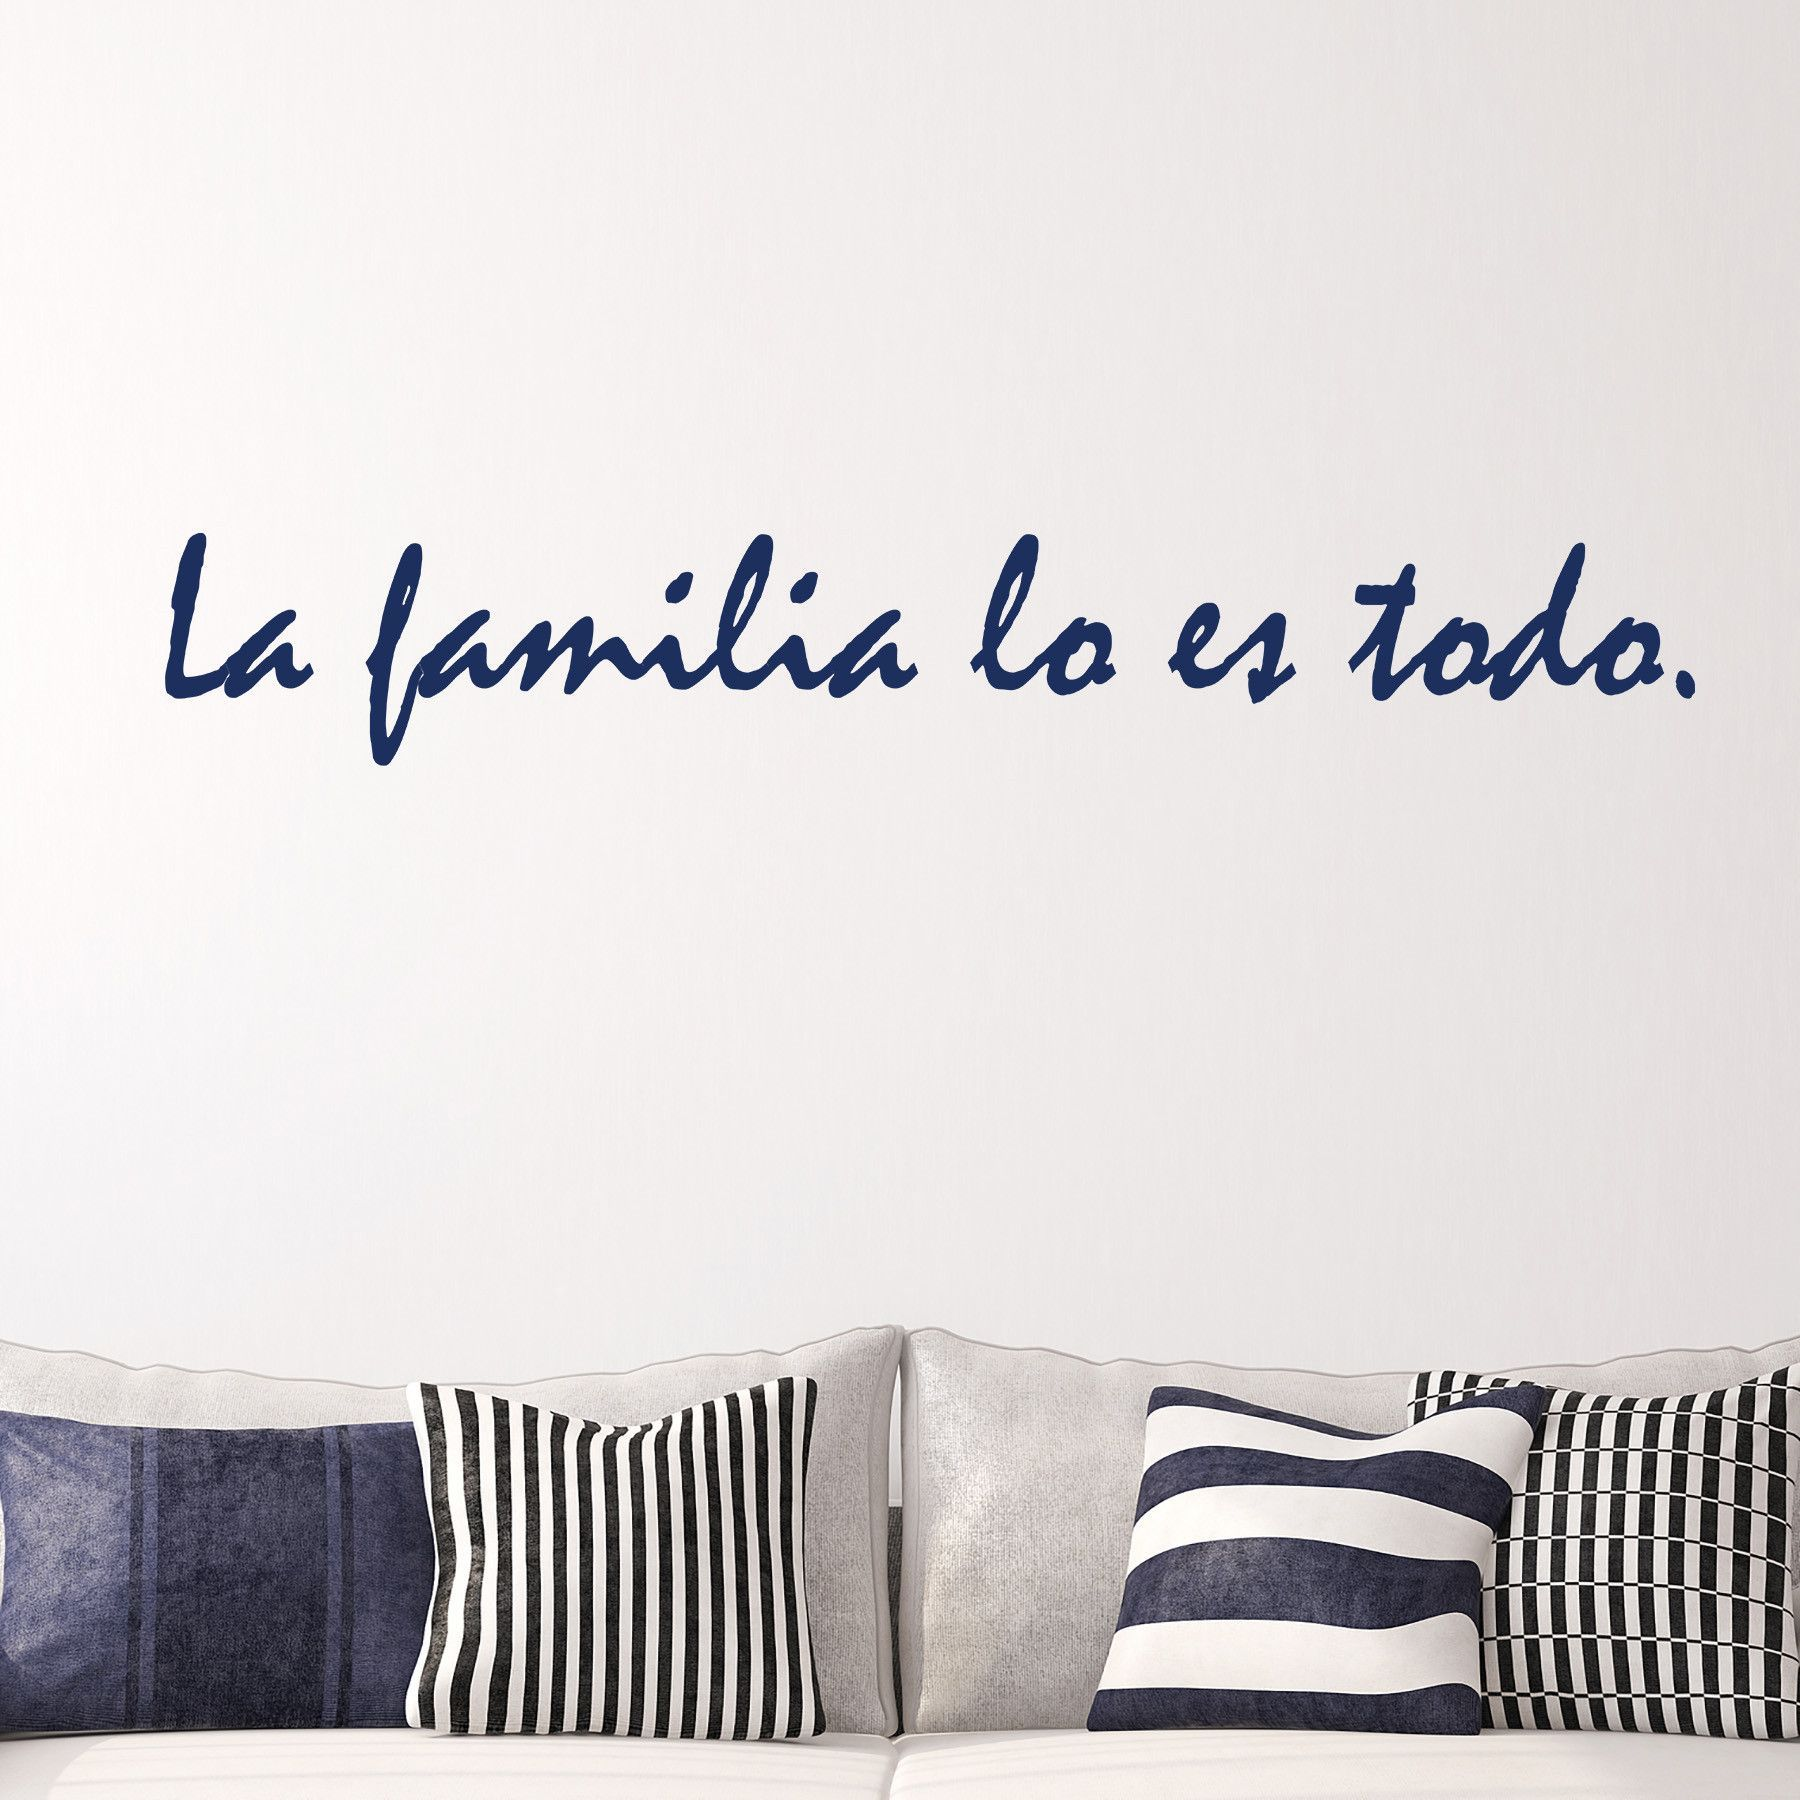 Quotes About Friendship In Spanish La Familia  Spanish Spanish Quotes And Meaningful Words